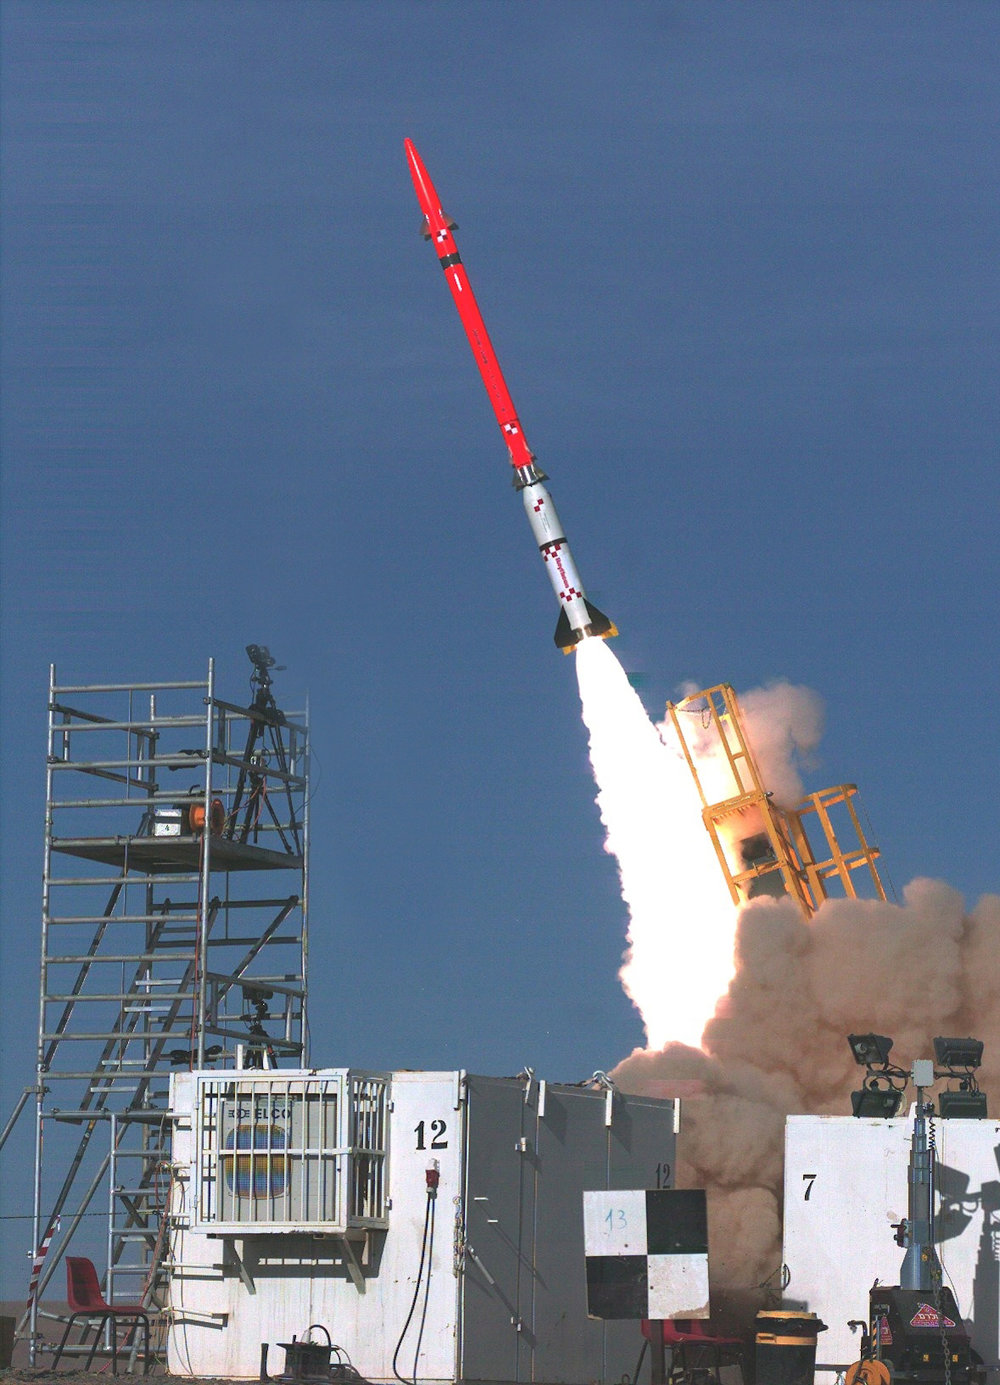 A test of Israel's David's Sling missile defense system in November 2012. Credit: Israeli Ministry of Defense/Flash90.